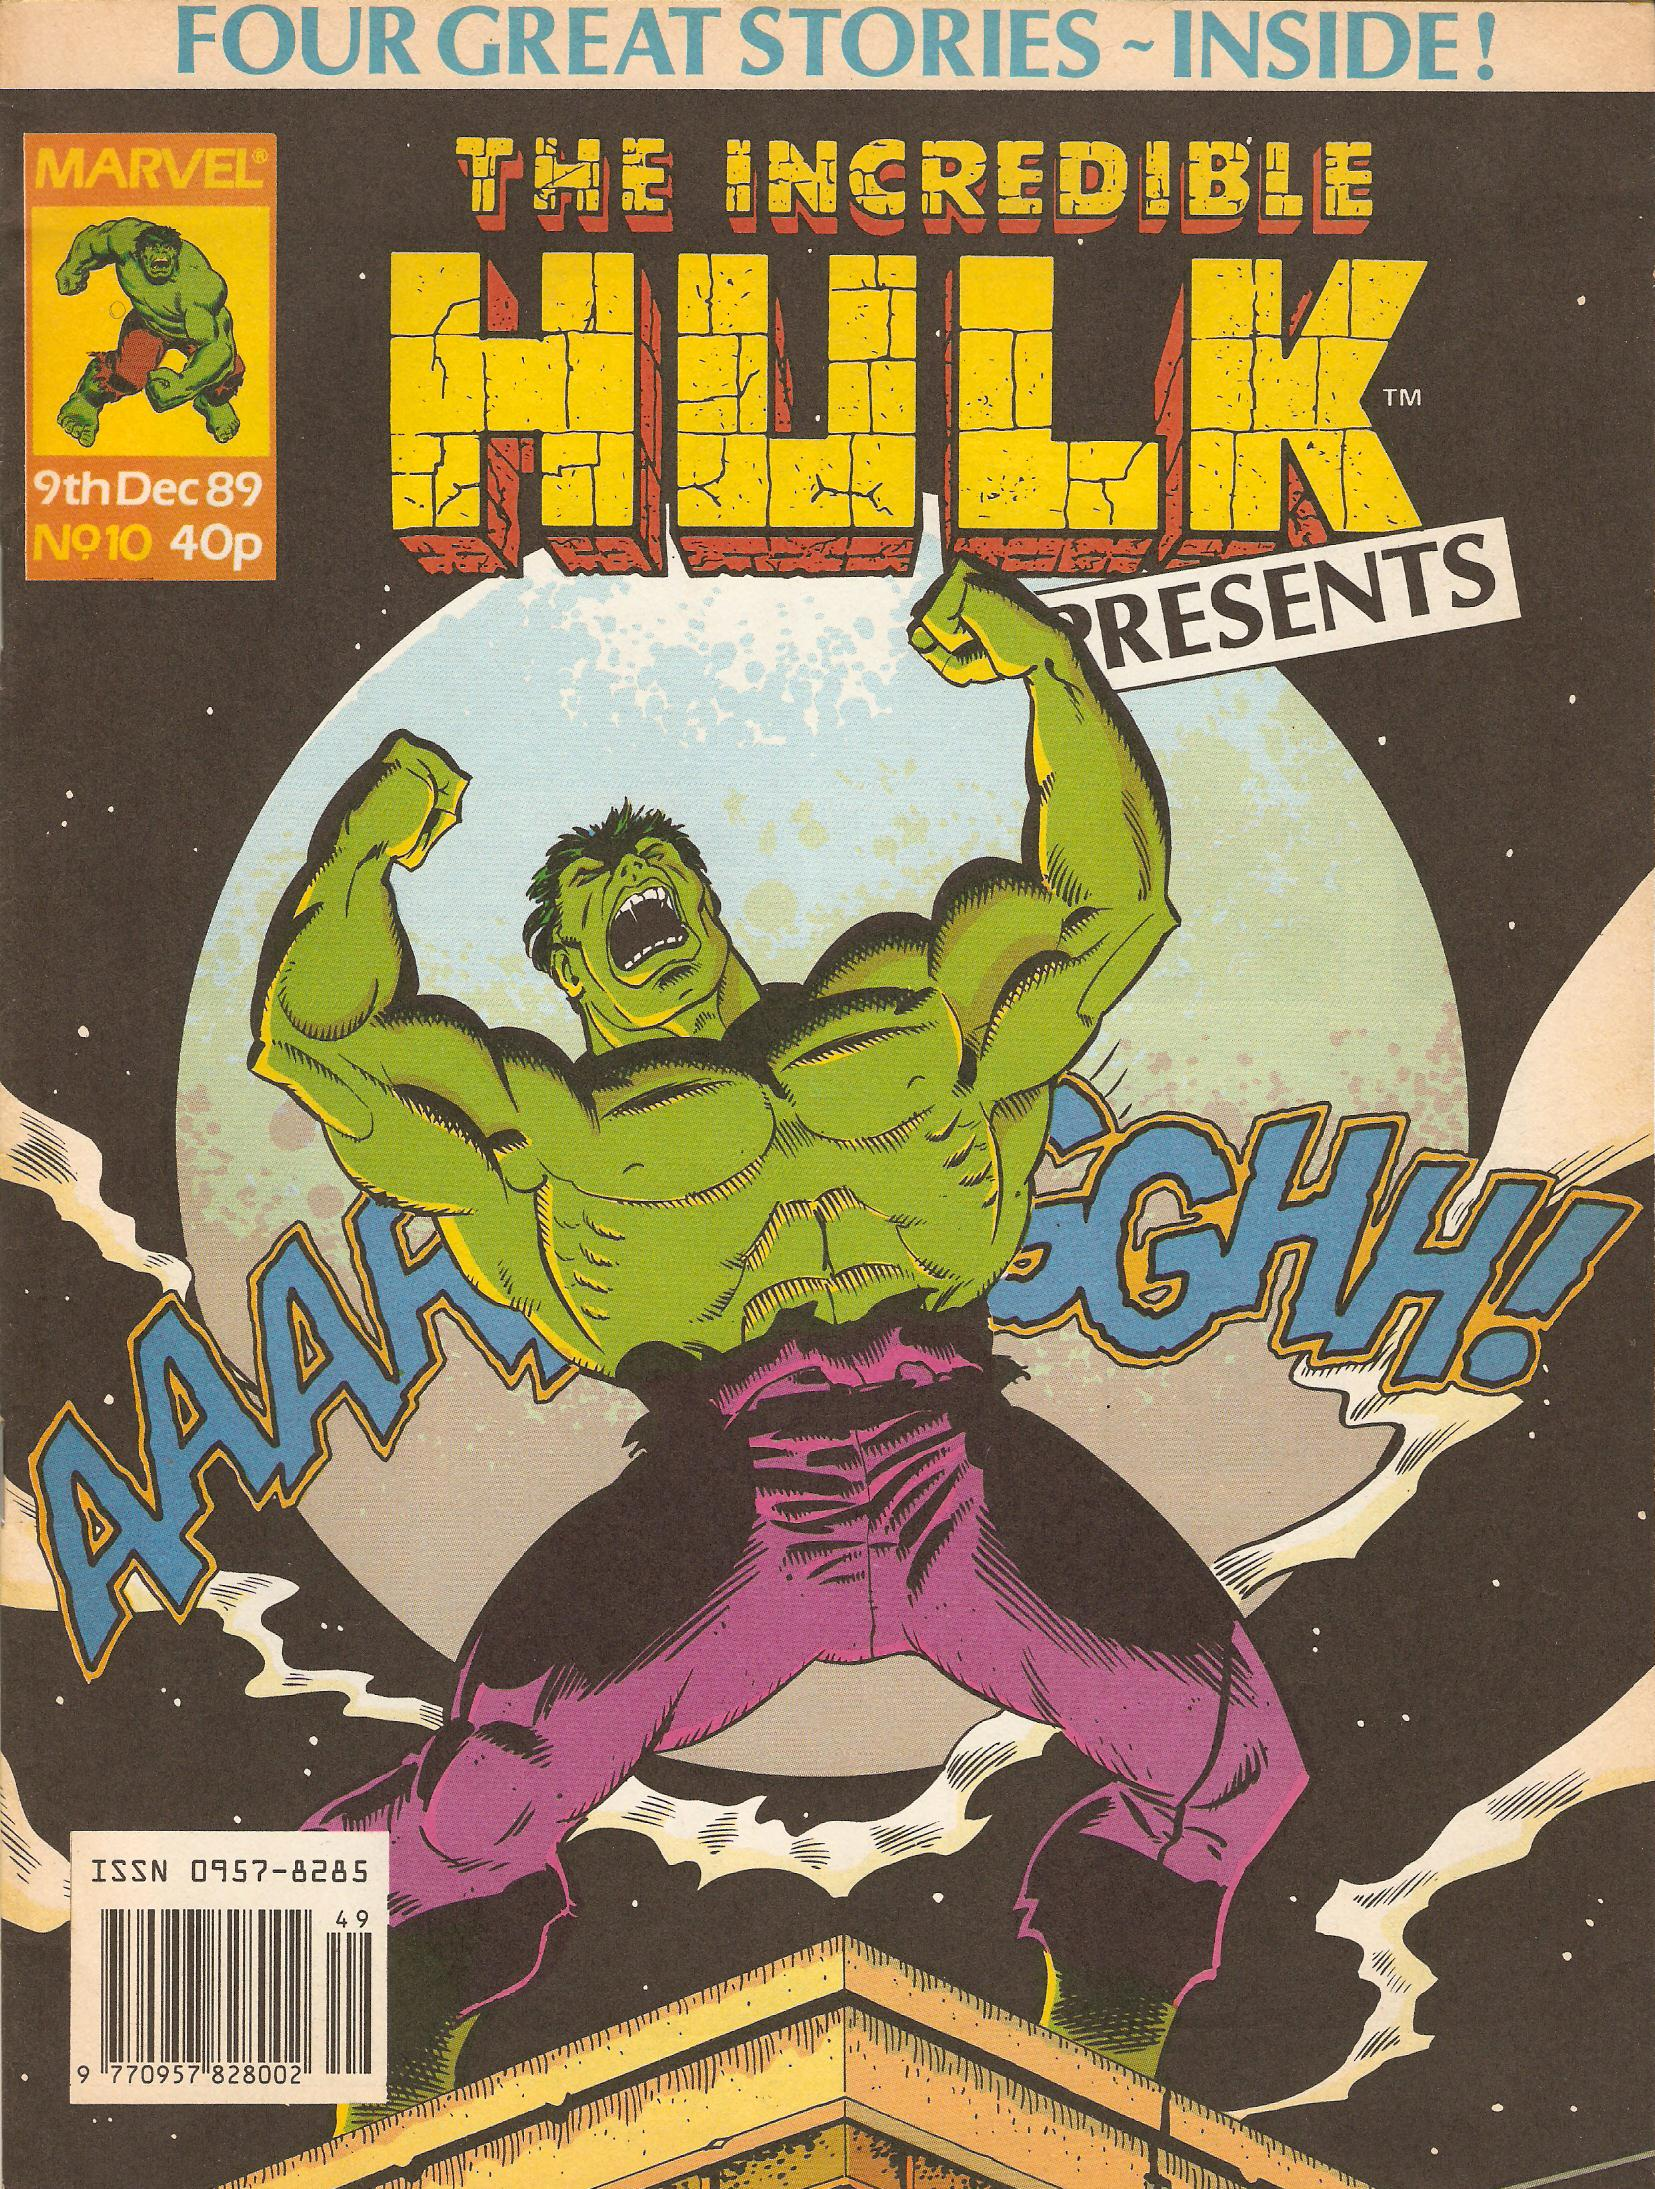 Incredible hulk presents 10